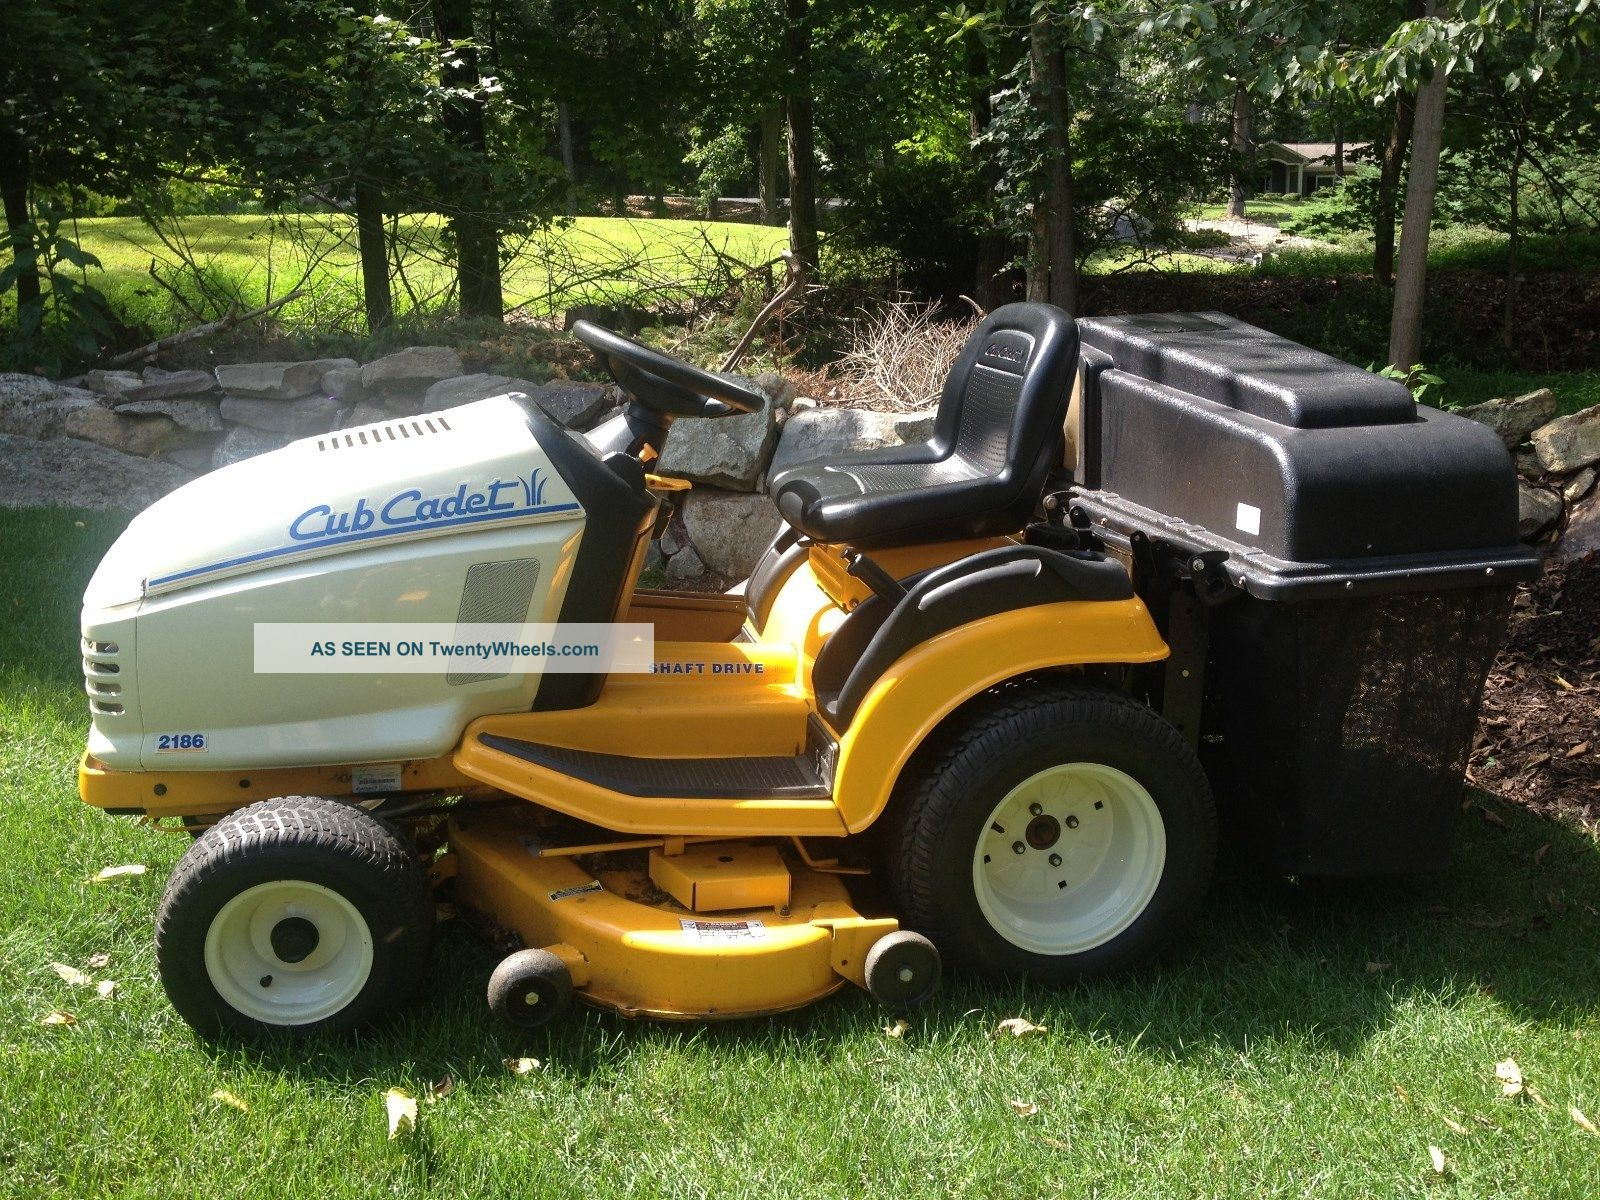 Cub Cadet Lawn Tractors : Page not found